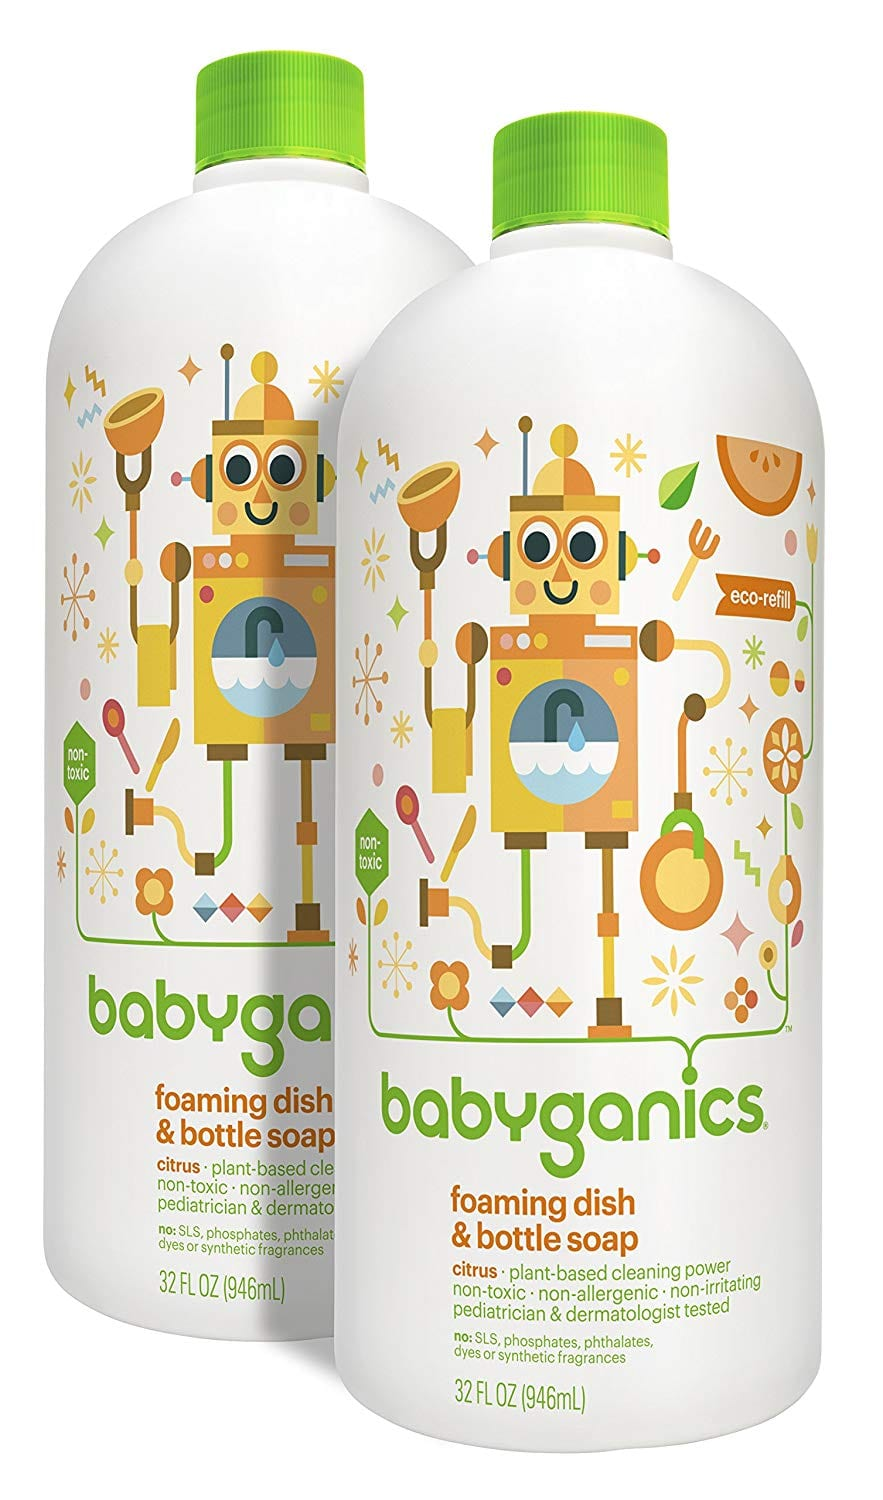 2-Pack of 32oz Babyganics Foaming Dish & Bottle Soap (Fragrance Free) $8.32 or less w/ S&S + Free S/H